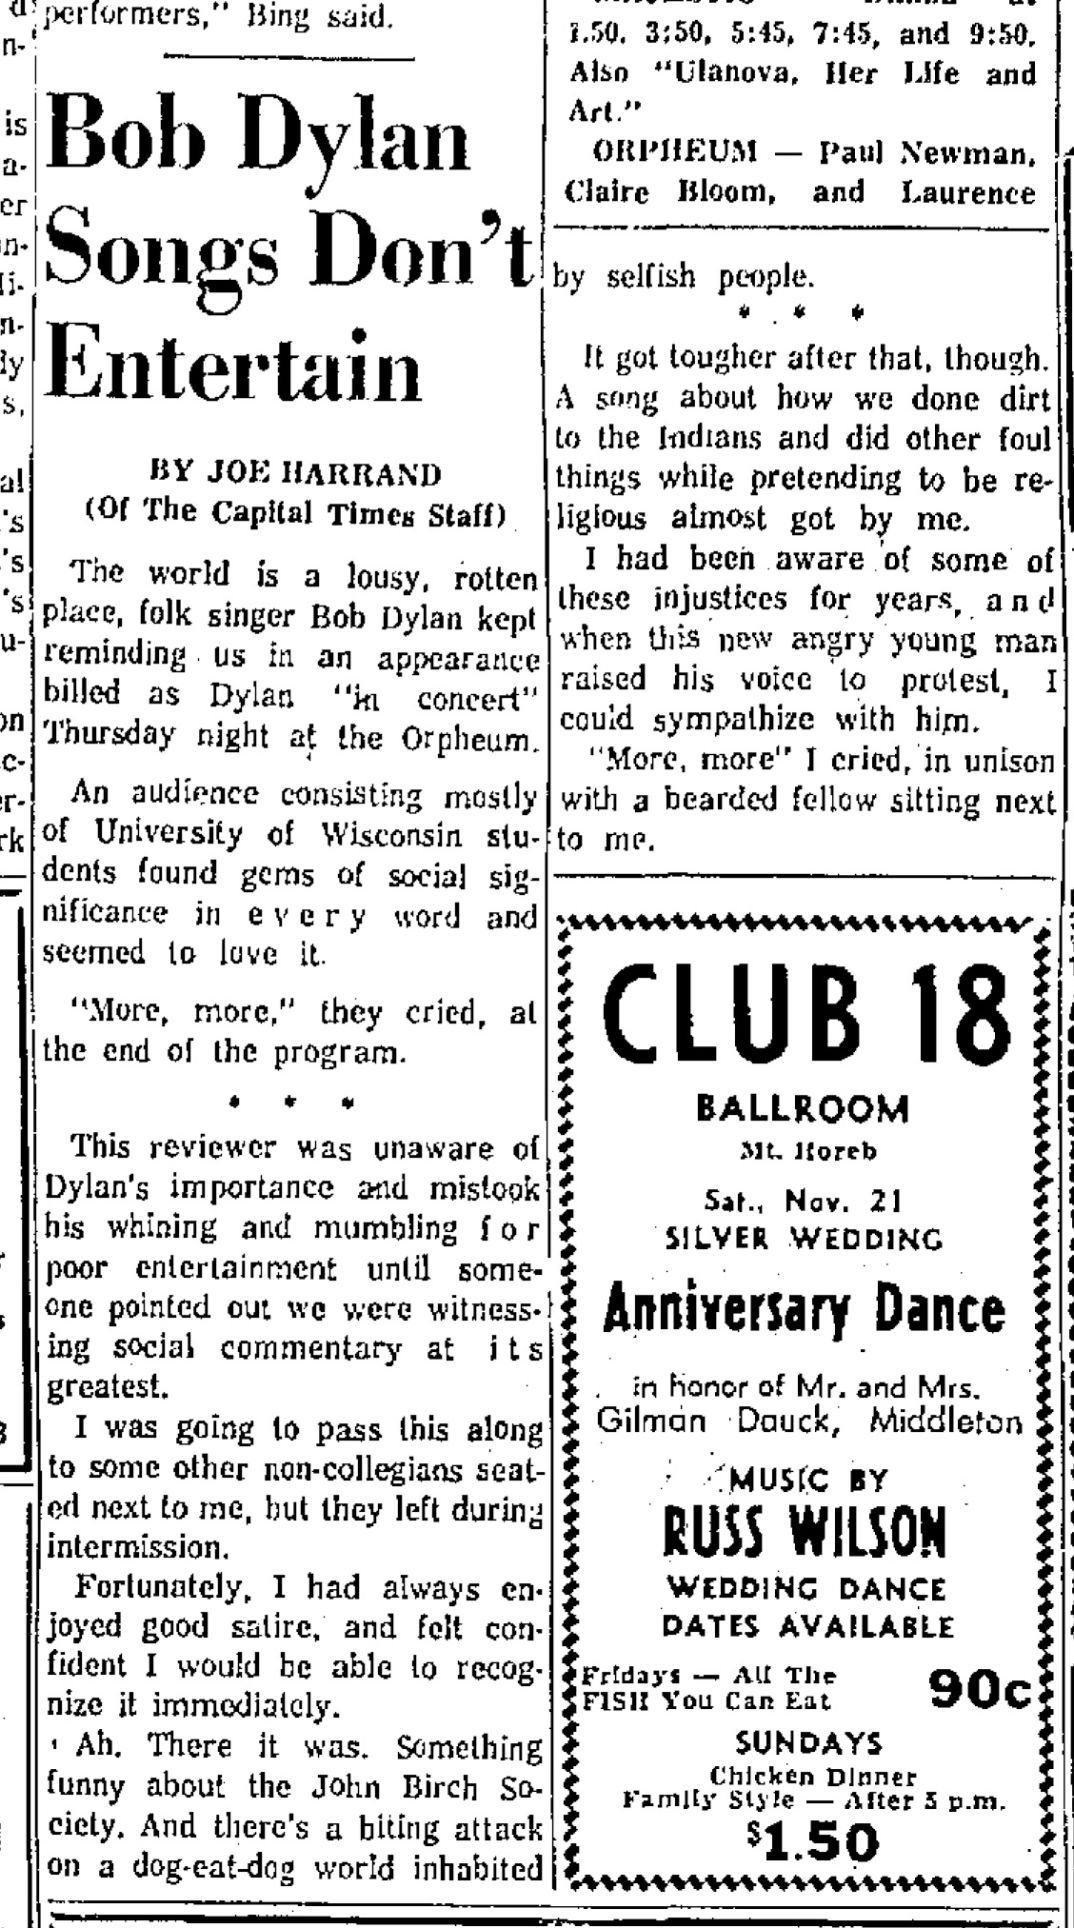 1964 Bob Dylan concert review (Capital Times)